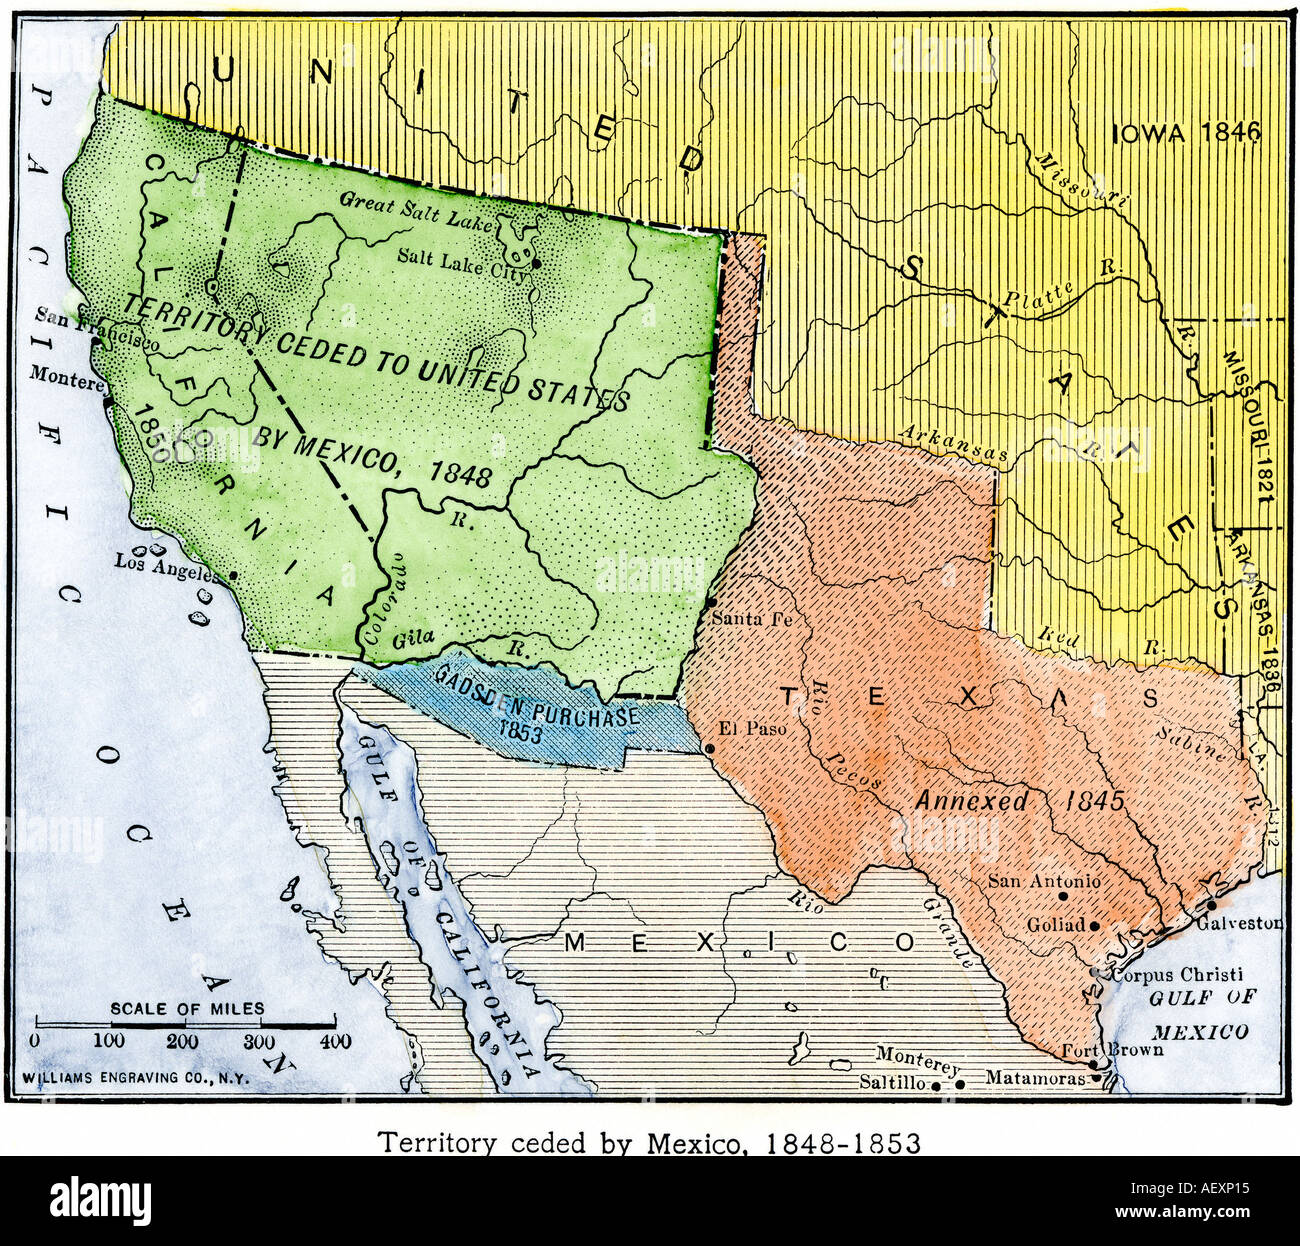 an account of the annexation of texas to the united states and treaty of guadalupe hidalgo The treaty was signed in 1846 and at the conclusion of the mexican-american war in 1848, which was ended by the signing and the ratification of the treaty of guadalupe-hidalgo in 1848 (the annexation of texas, nd.